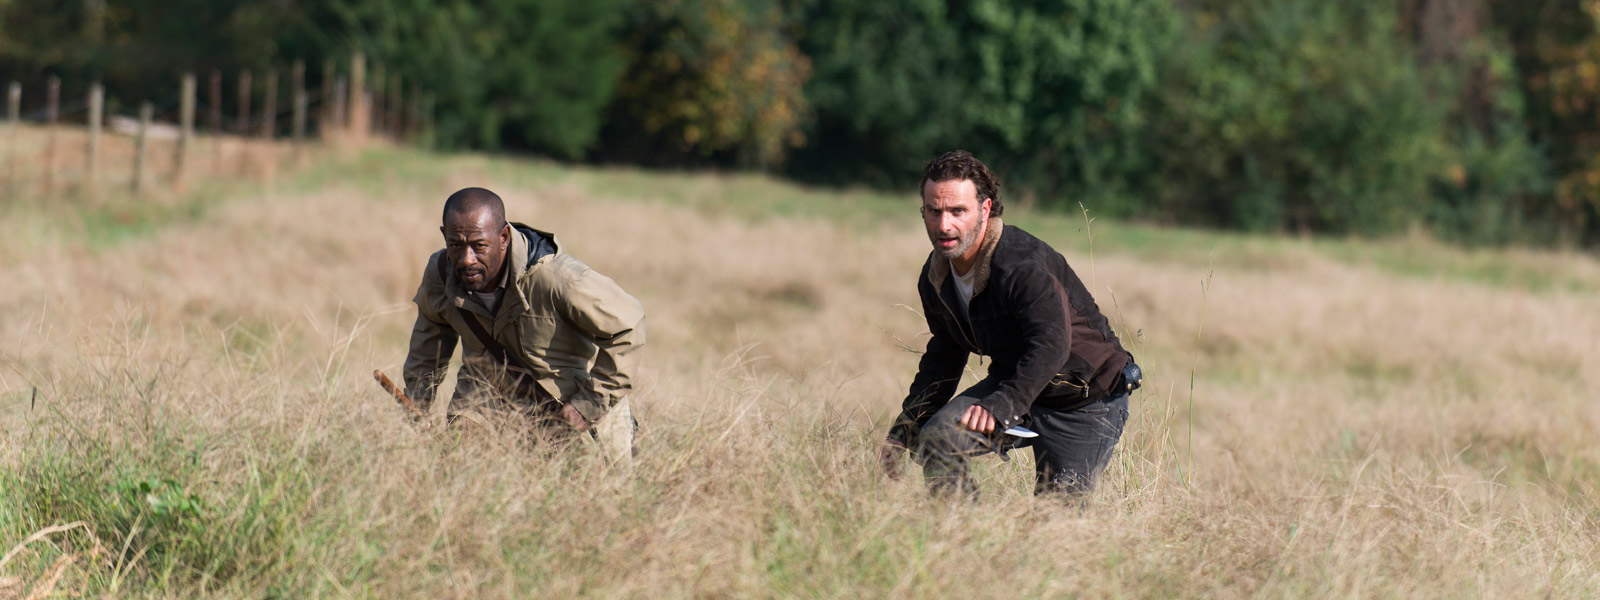 the-walking-dead-episode-615-morgan-james-rick-lincoln-post-800×600